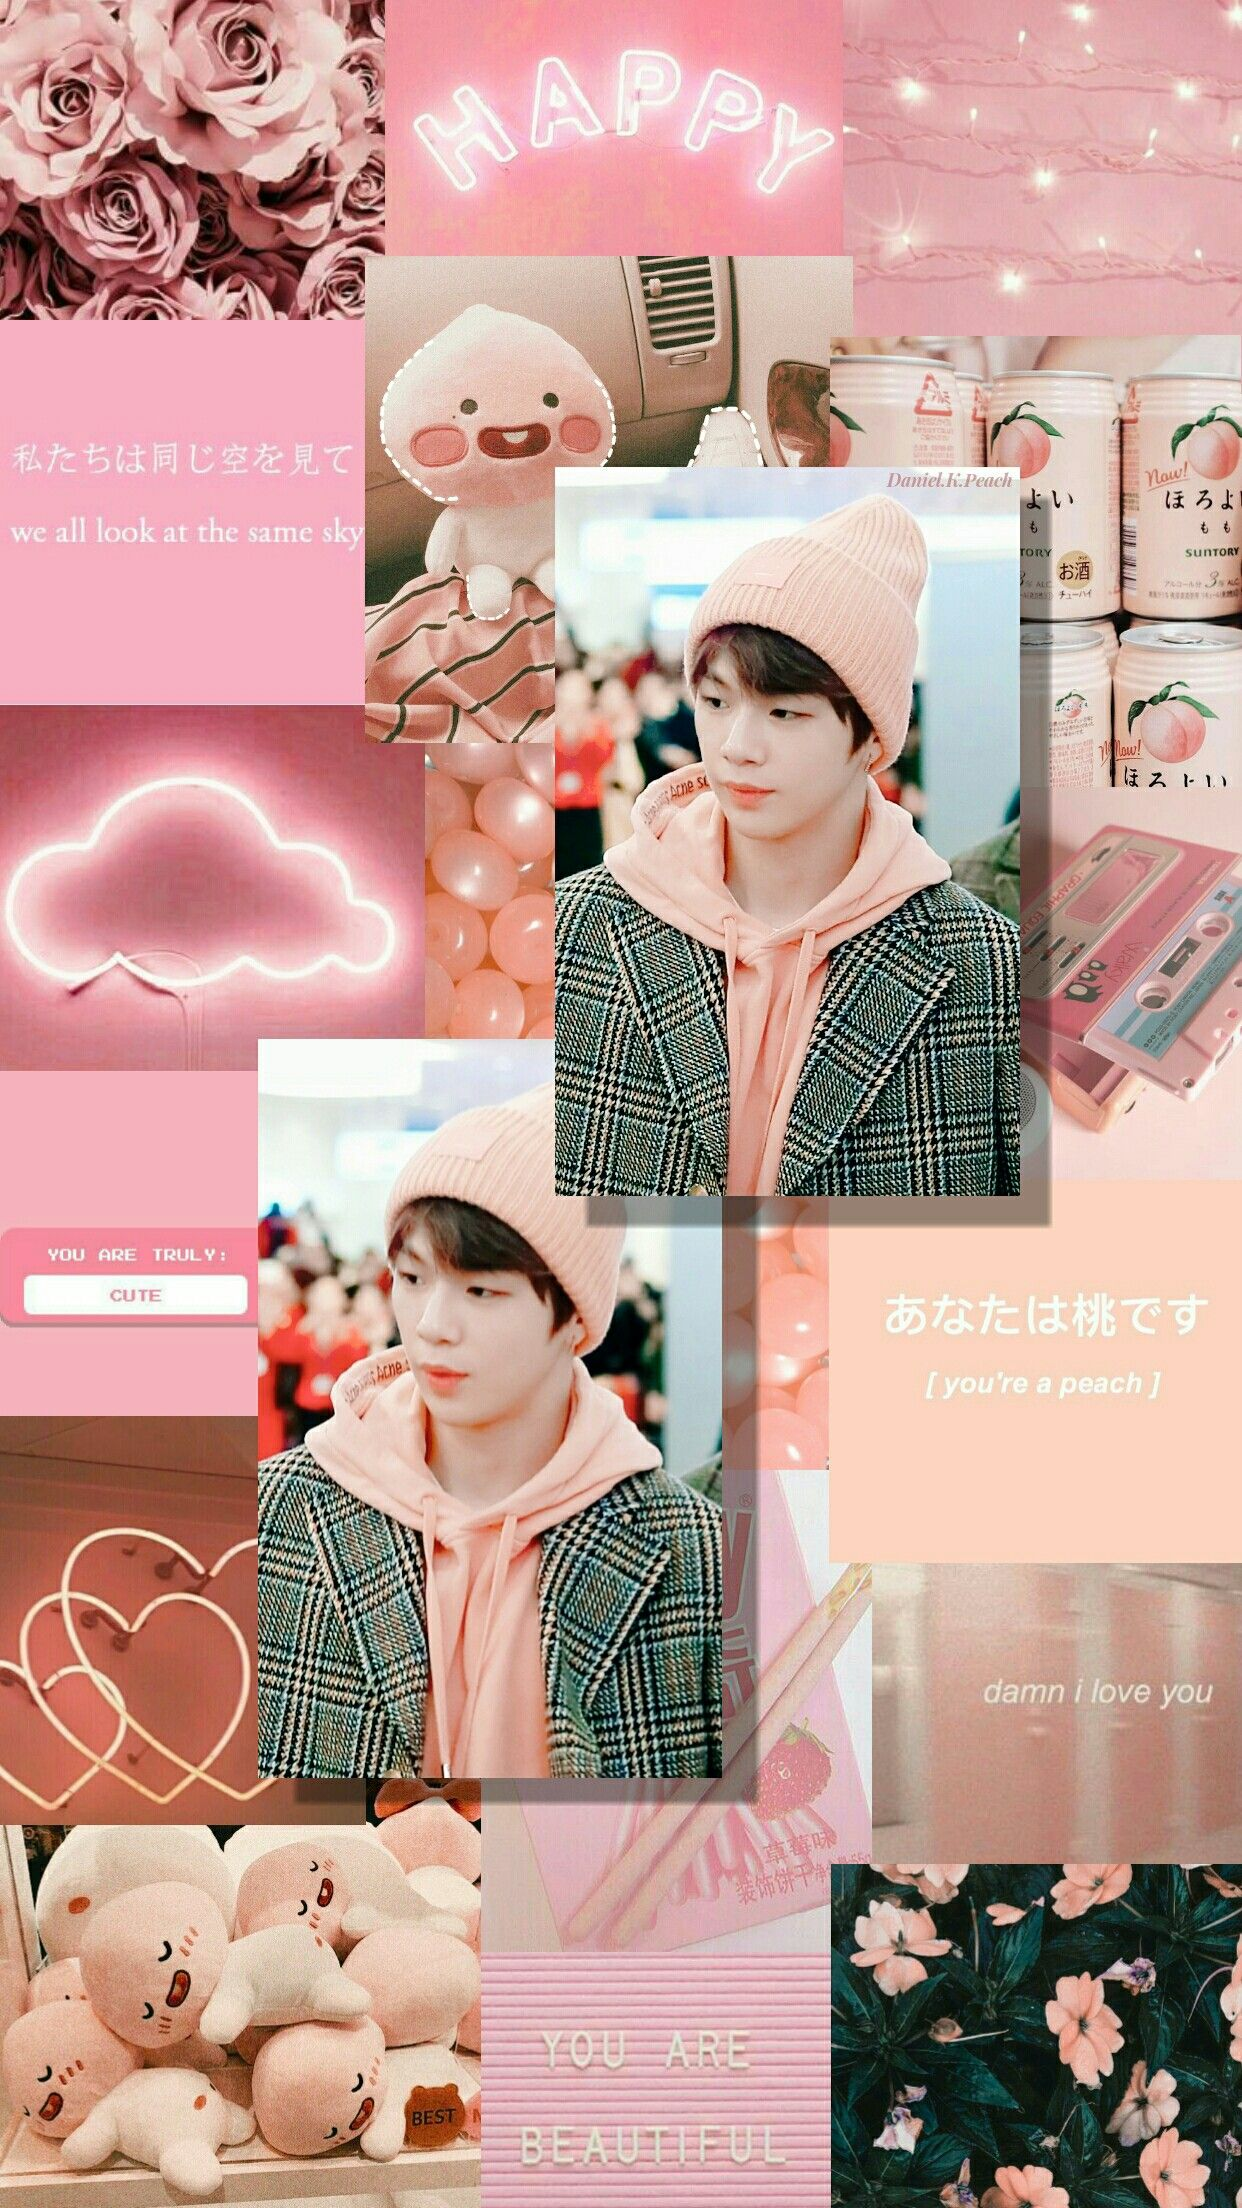 Pink and Peach Dream with Kang Daniel #kangdaniel